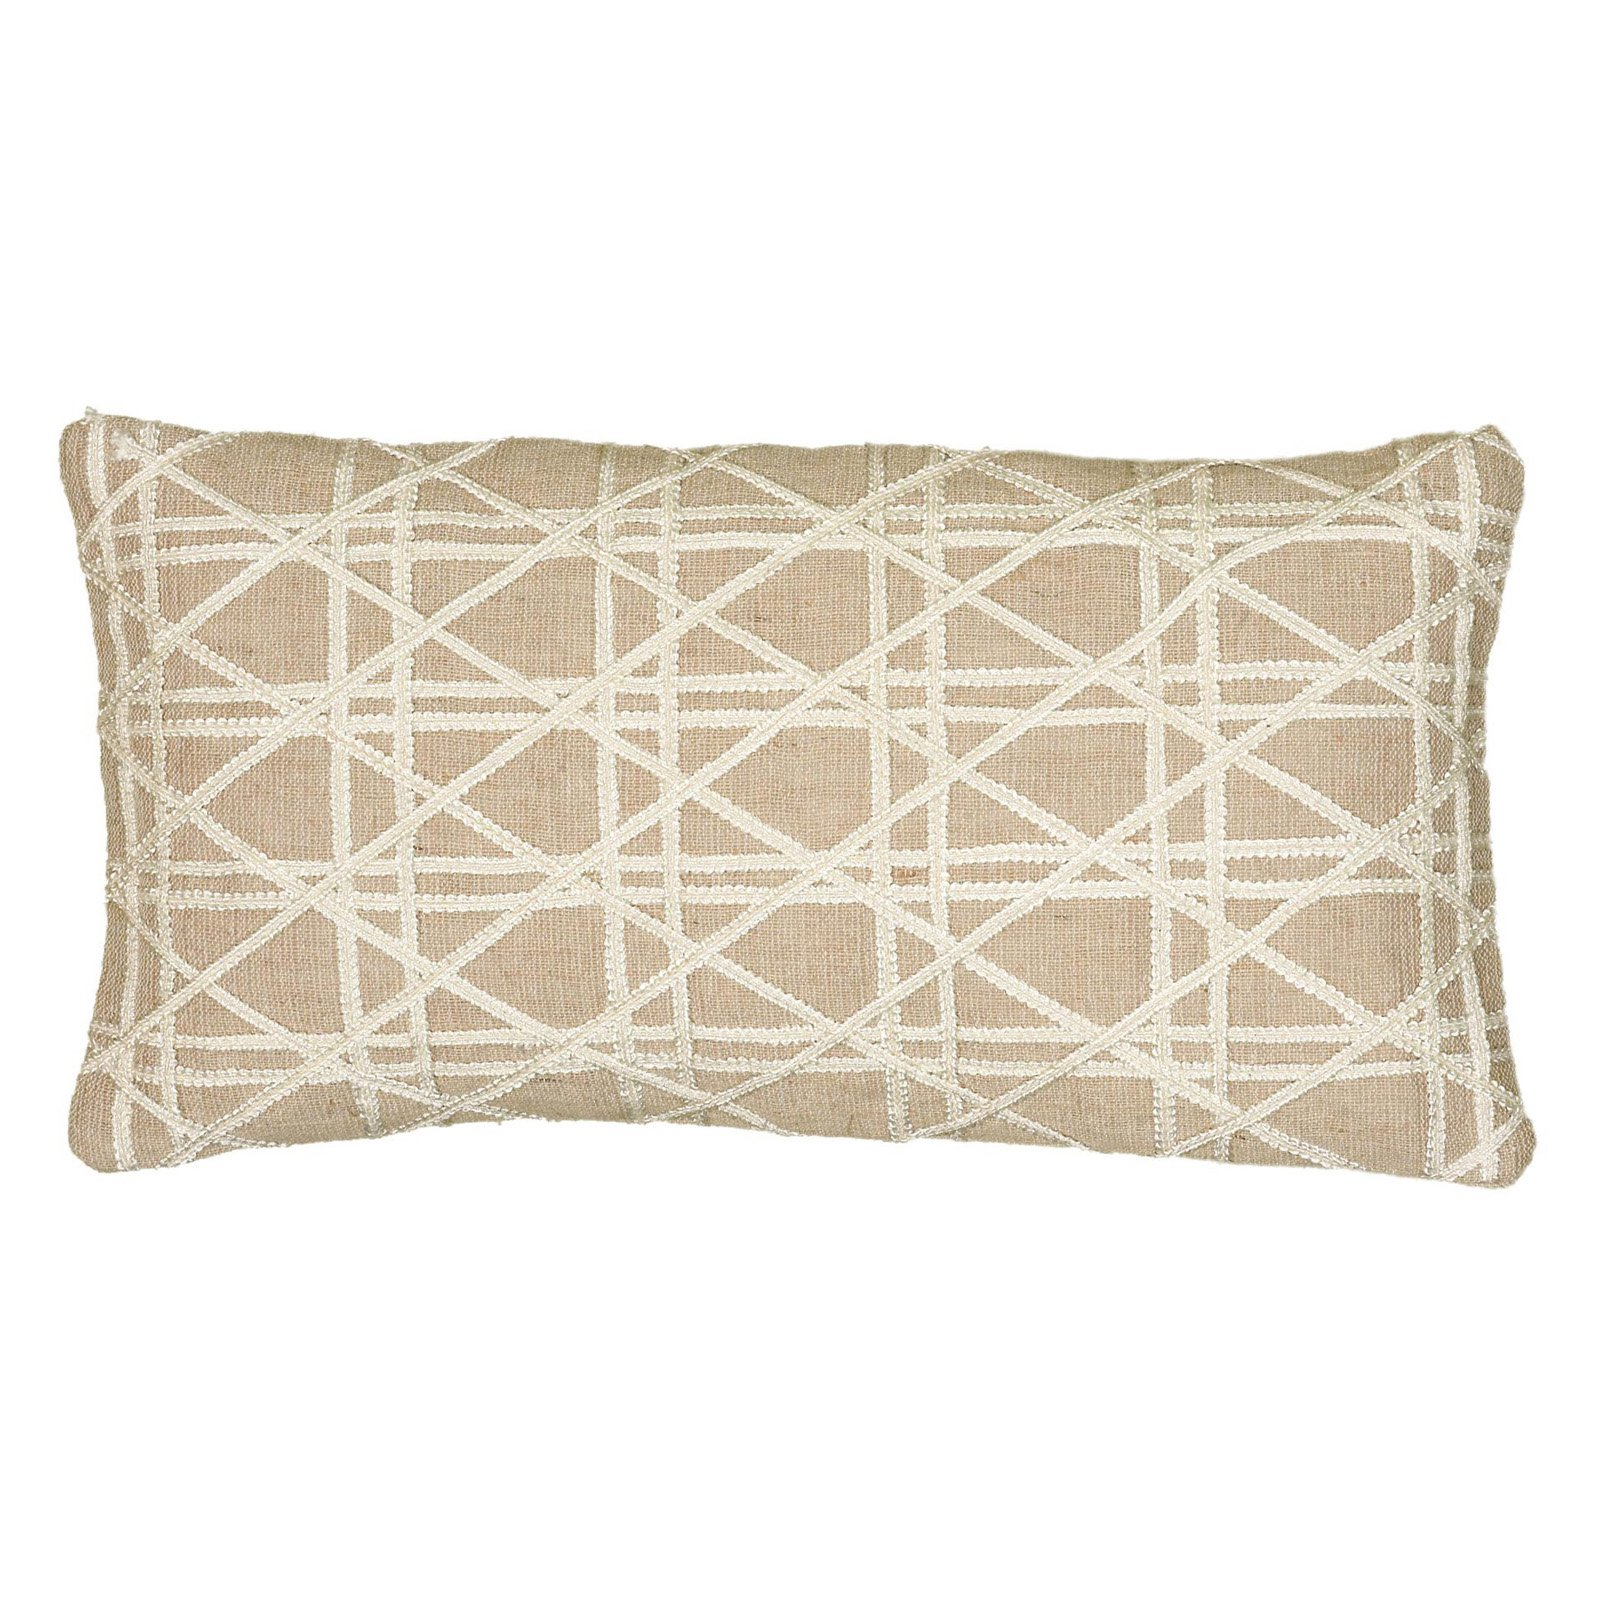 "Rizzy Home Caning Pattern Jute / Cotton Filled Decorative Throw Pillow, 11"" x 22"""